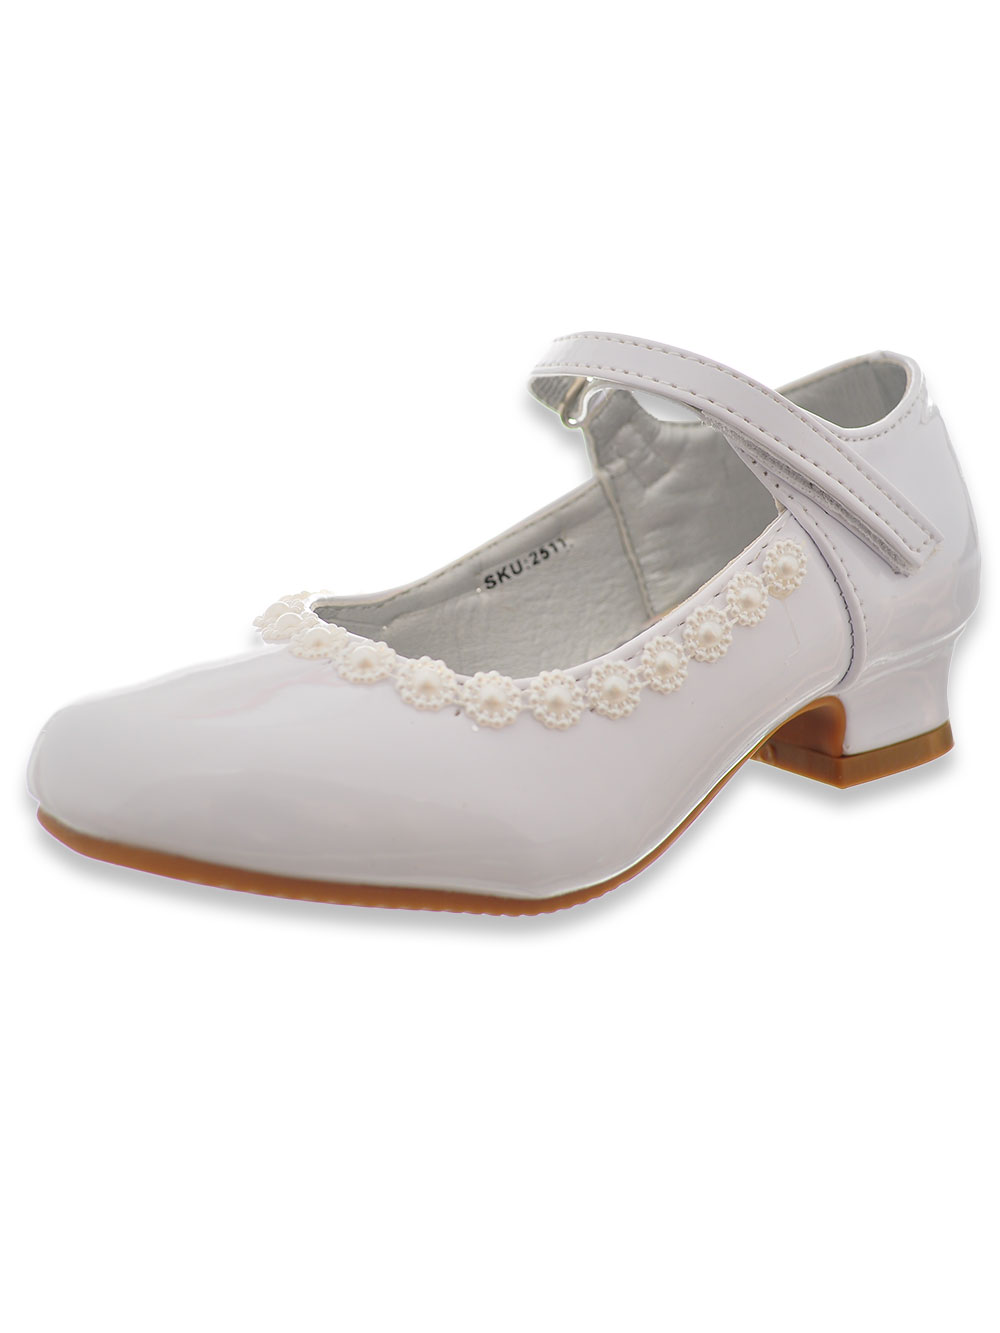 Girls' Patent Leather Flower Dress Shoes